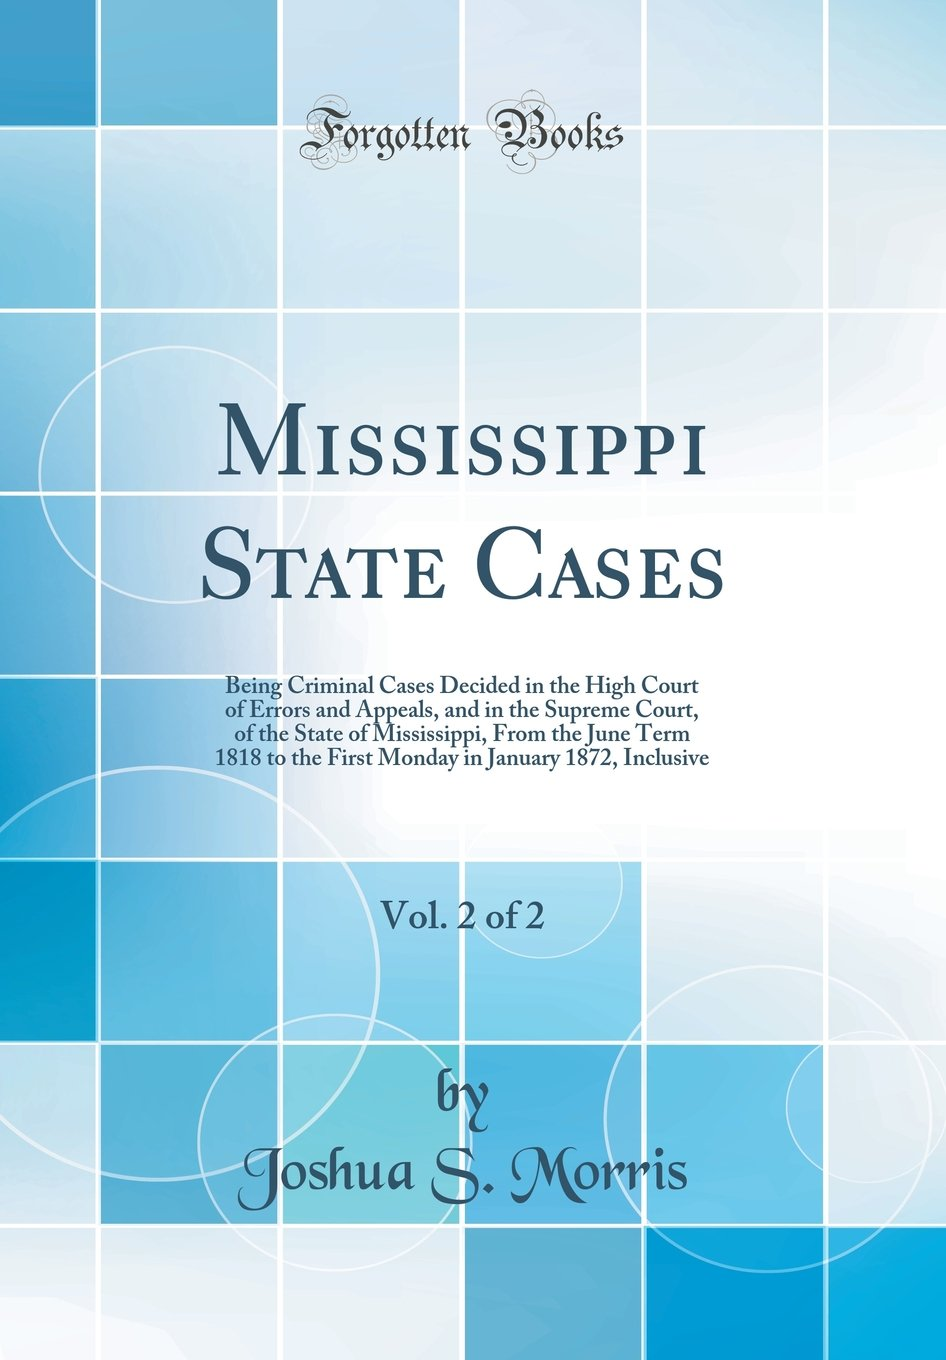 Mississippi State Cases, Vol. 2 of 2: Being Criminal Cases Decided in the High Court of Errors and Appeals, and in the Supreme Court, of the State of ... in January 1872, Inclusive (Classic Reprint) pdf